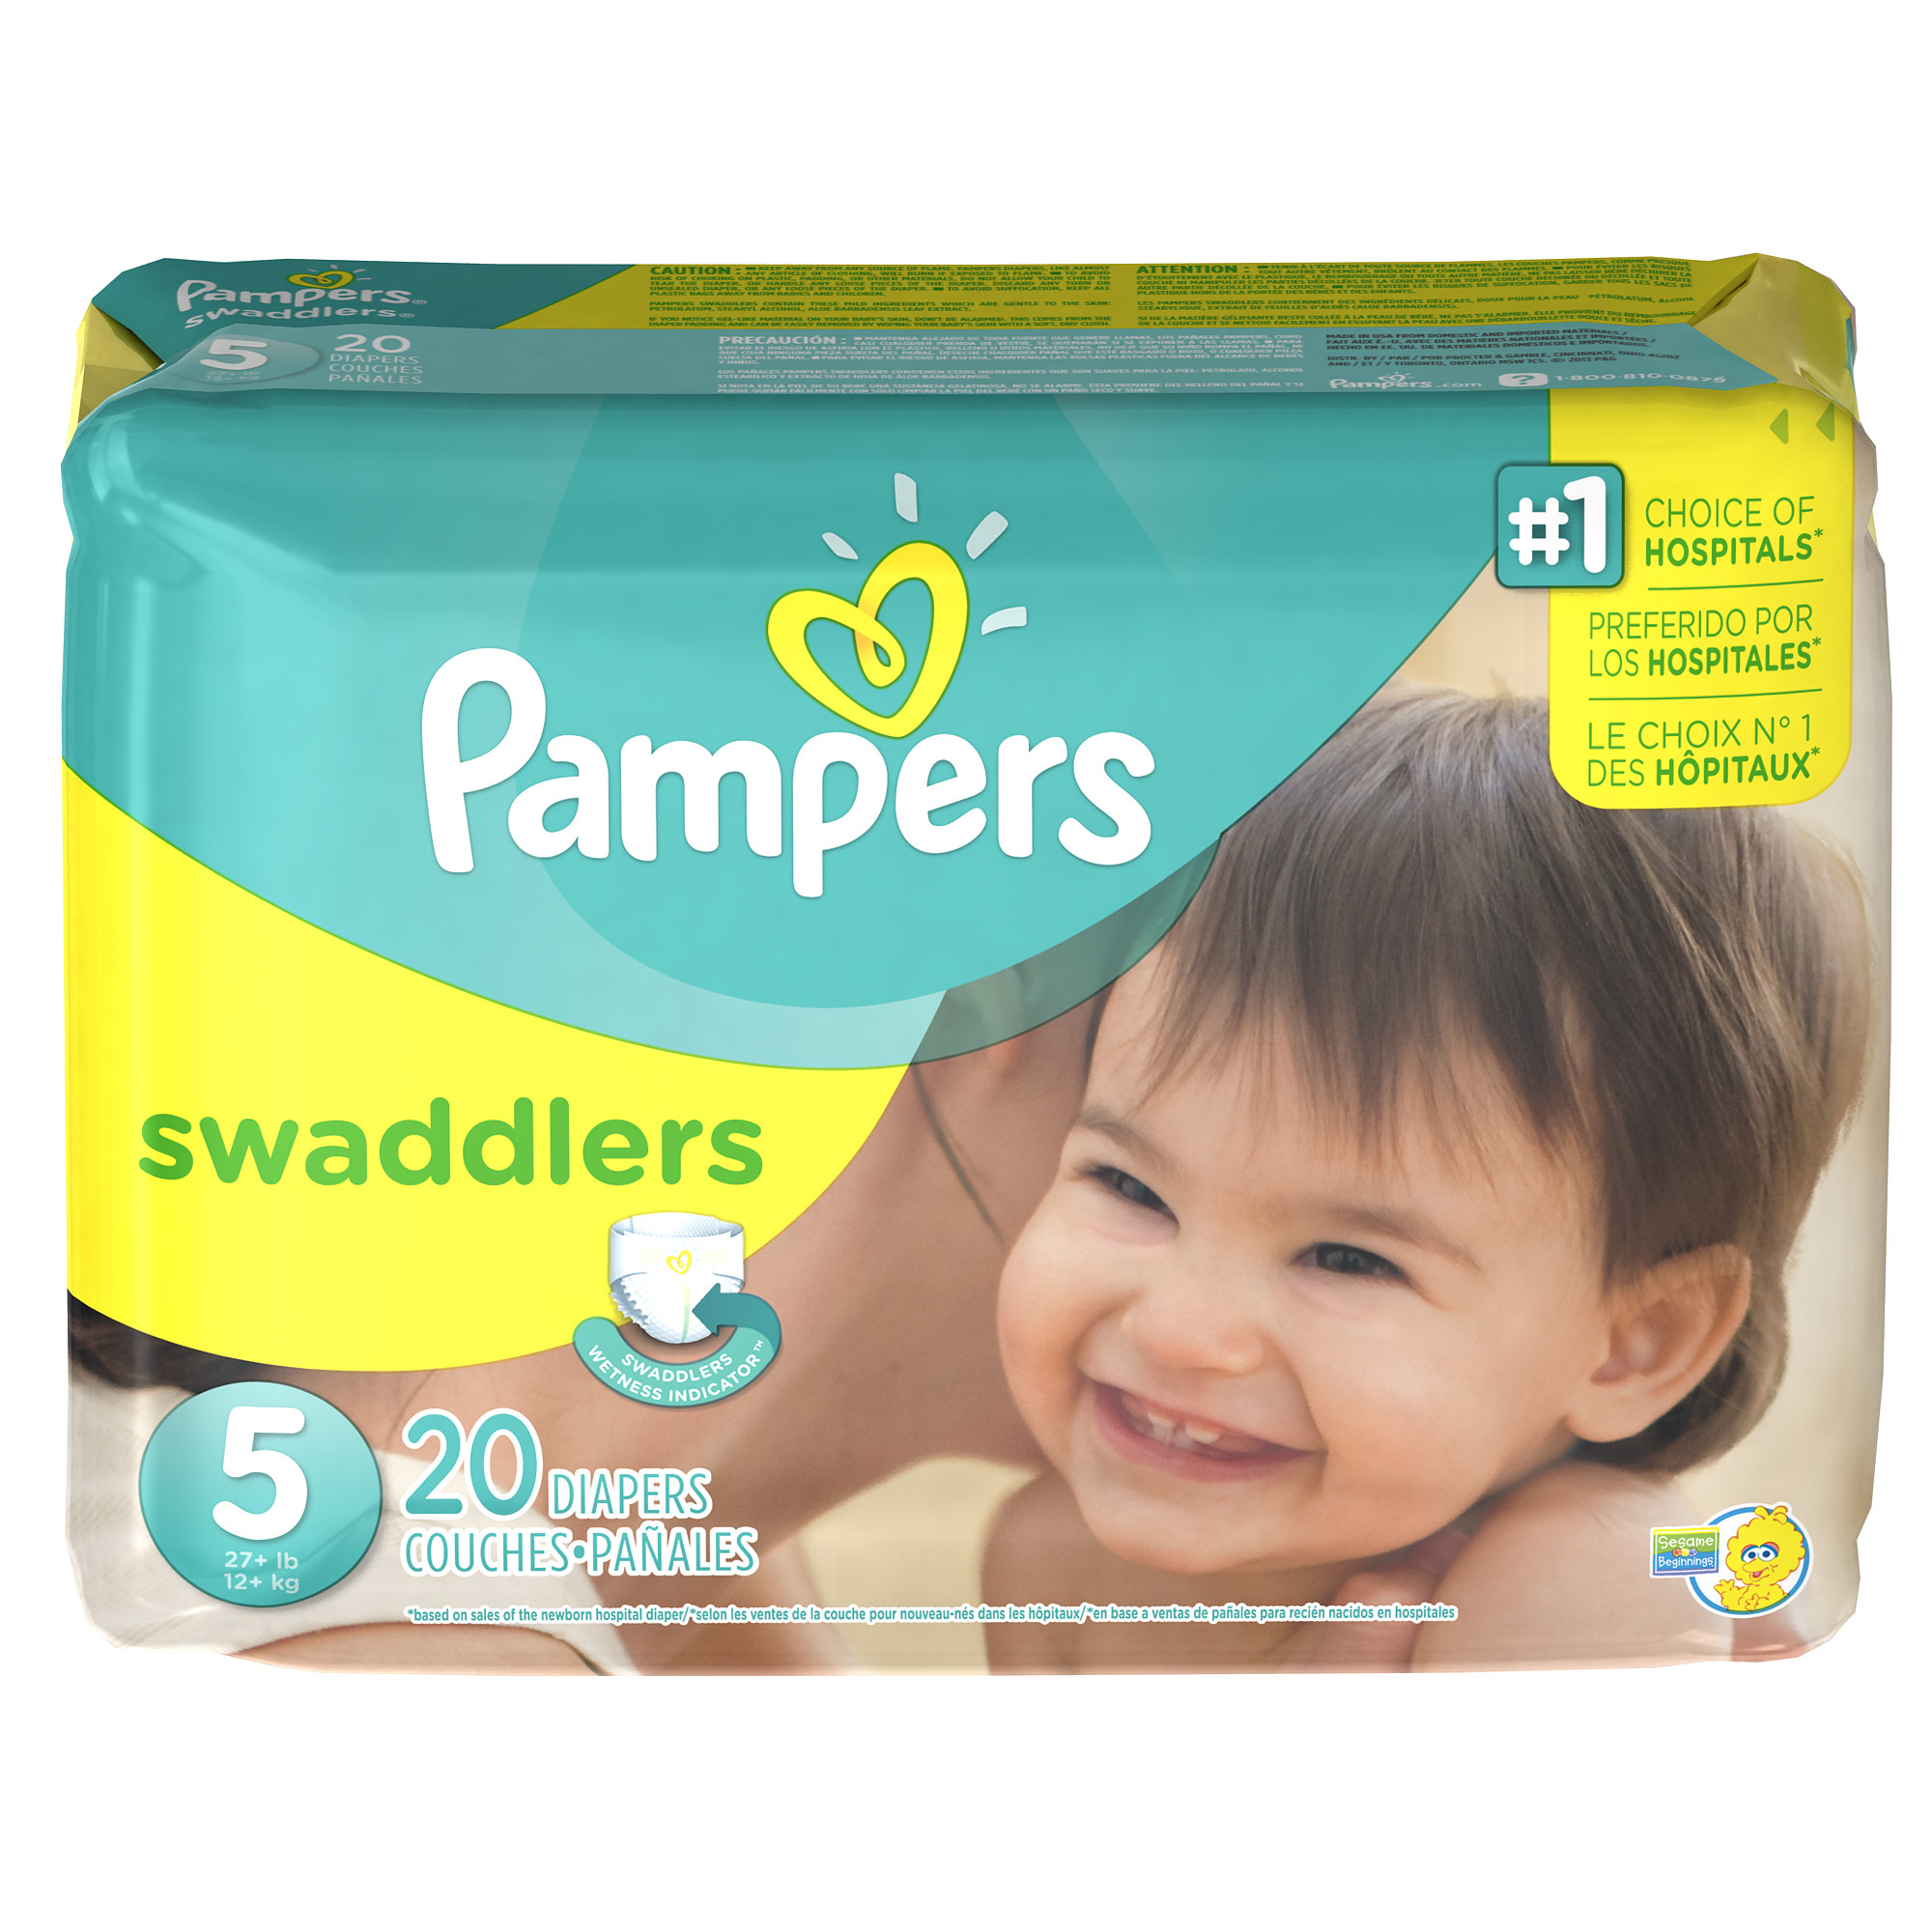 pampers diapers newborn - photo #29